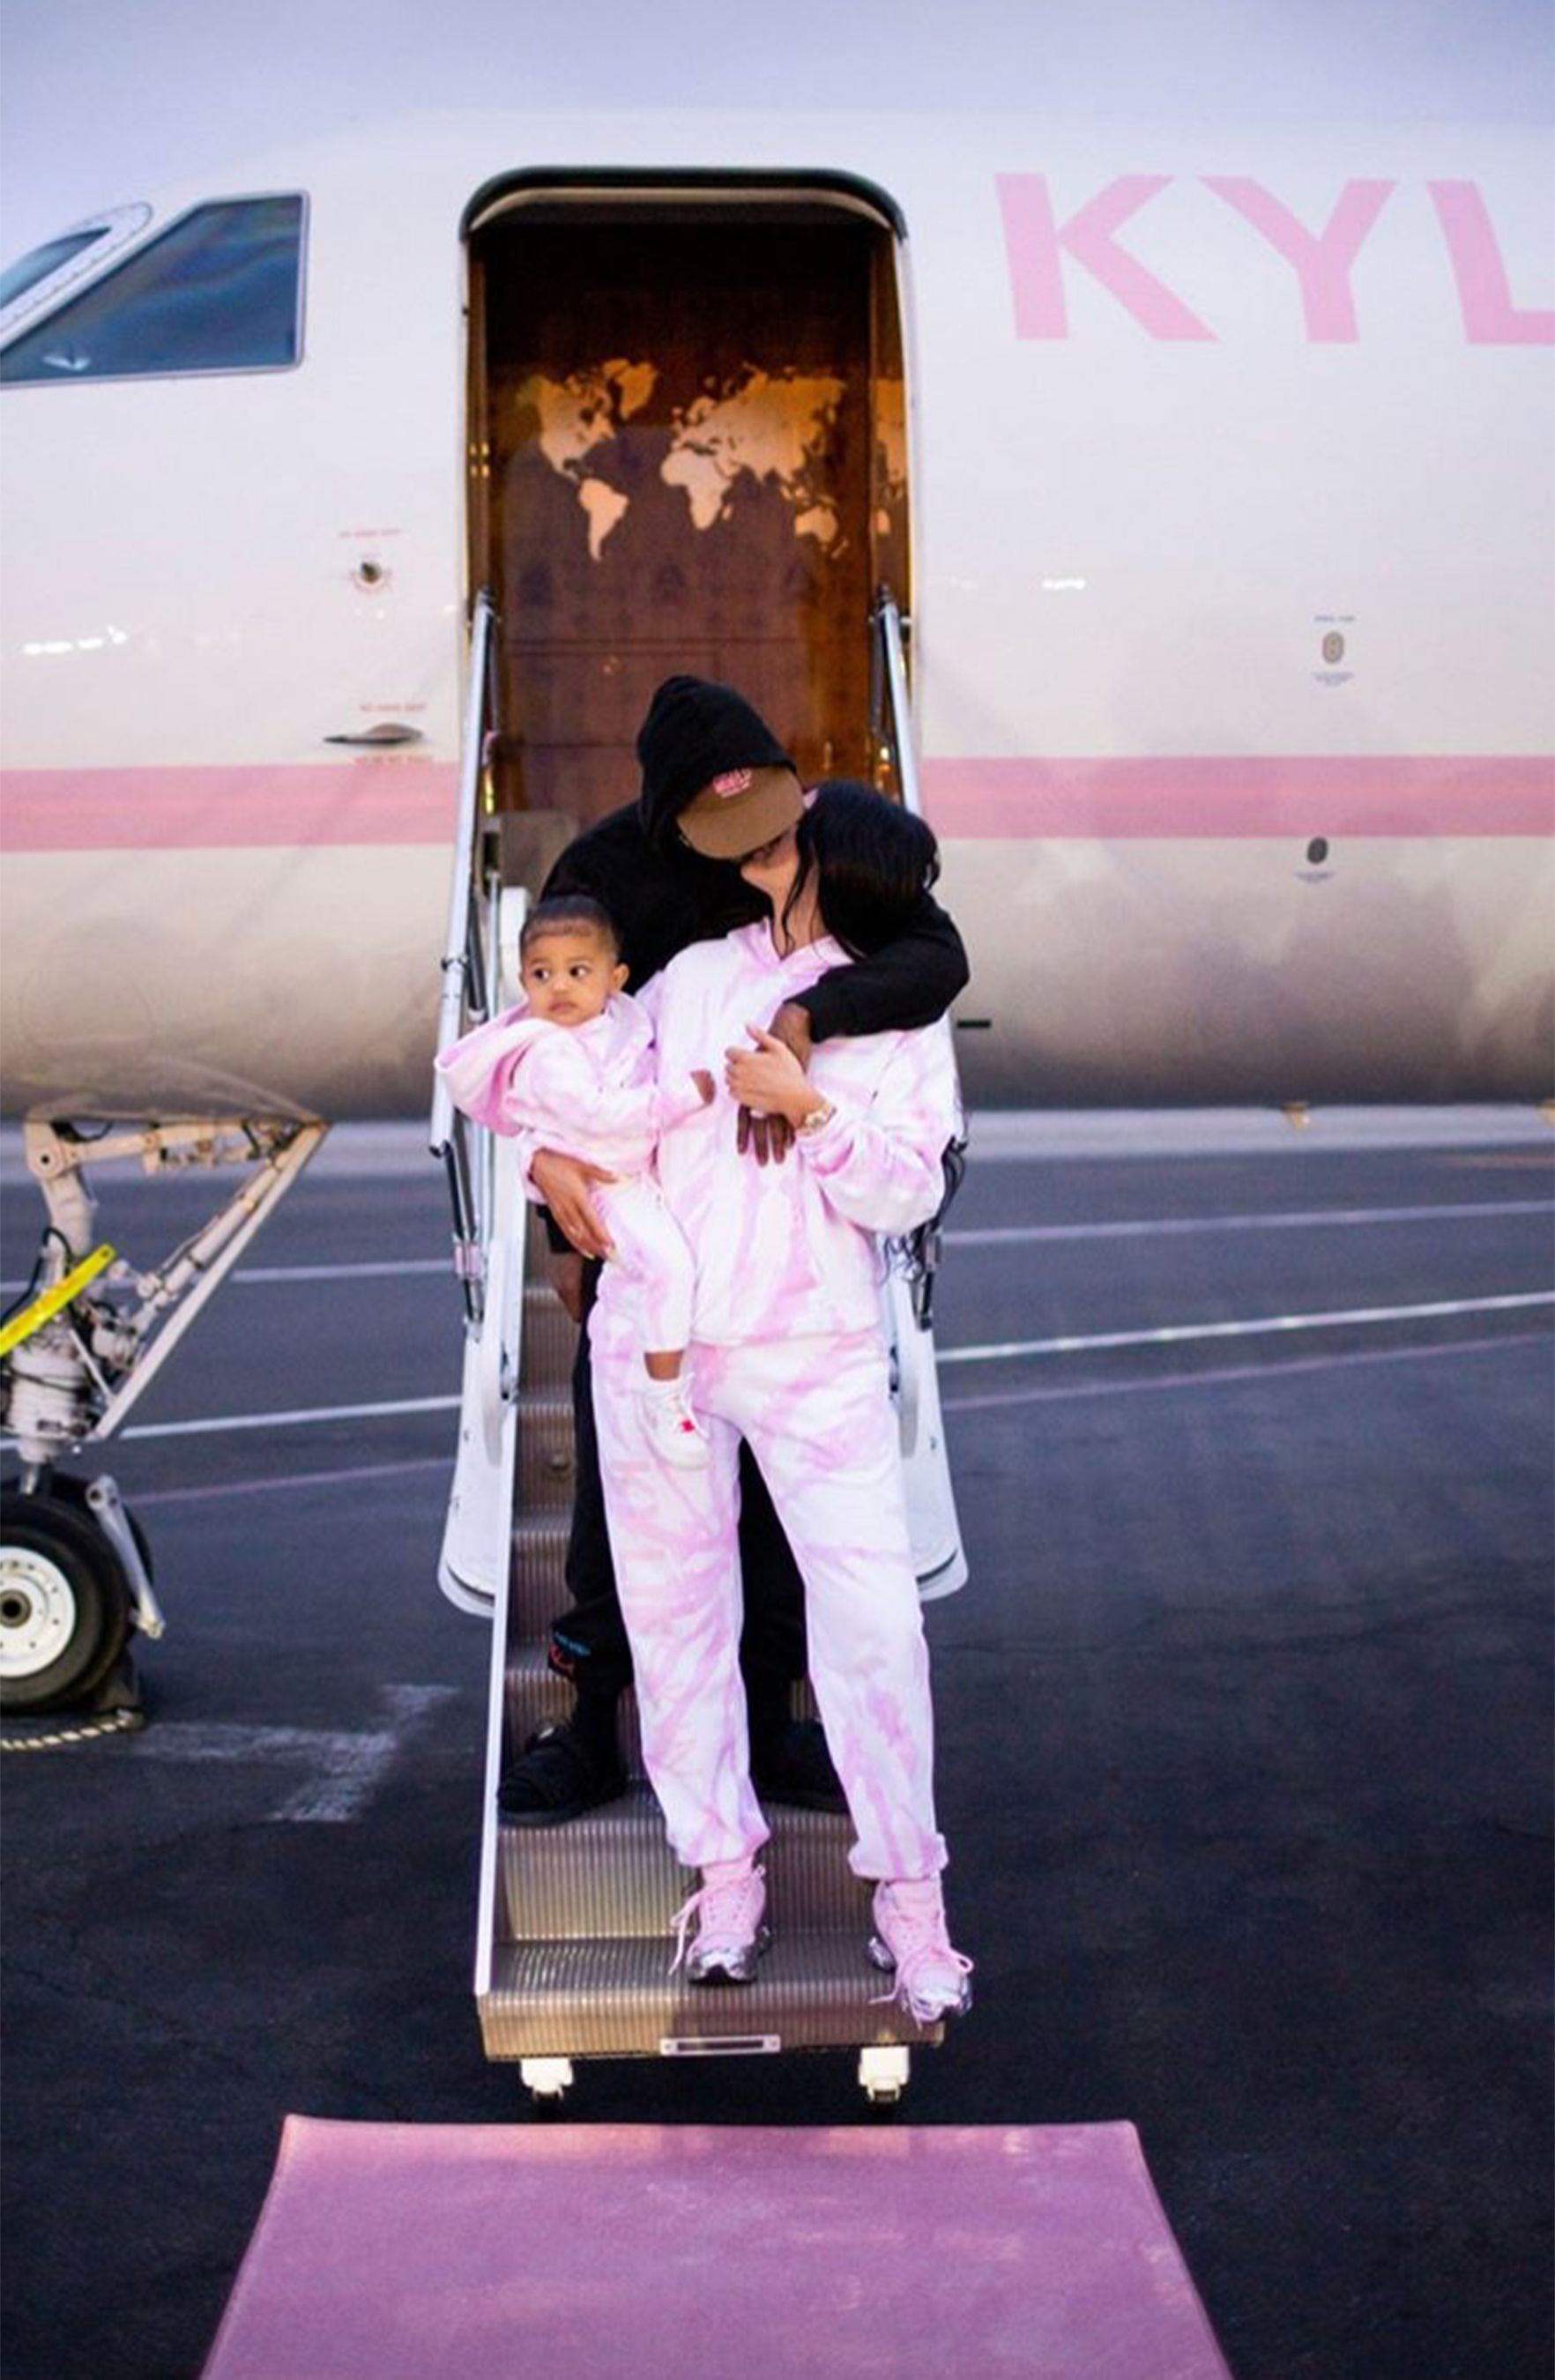 Kylie Jenner Brings Daughter Stormi Along for Kylie Skin Launch Trip — and Gets a Kiss from Boyfriend Travis Scott